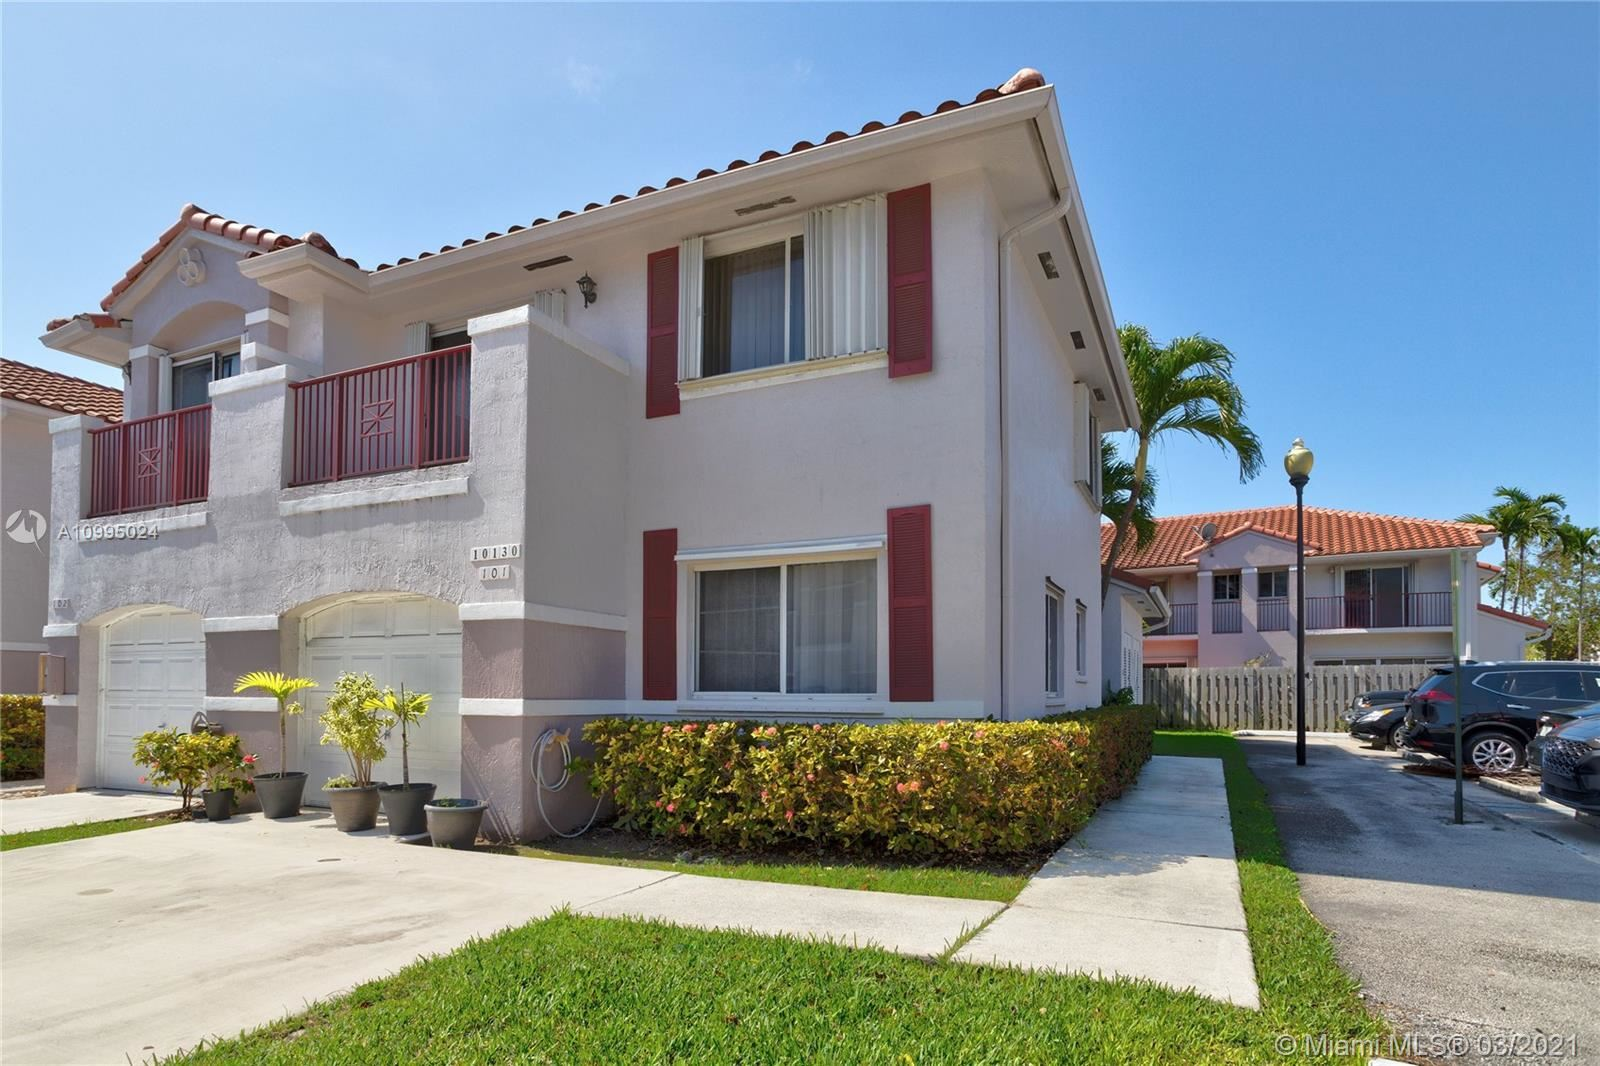 10130 SW 154th Cir Ct #1019, Miami, FL 33196 - #: A10995024